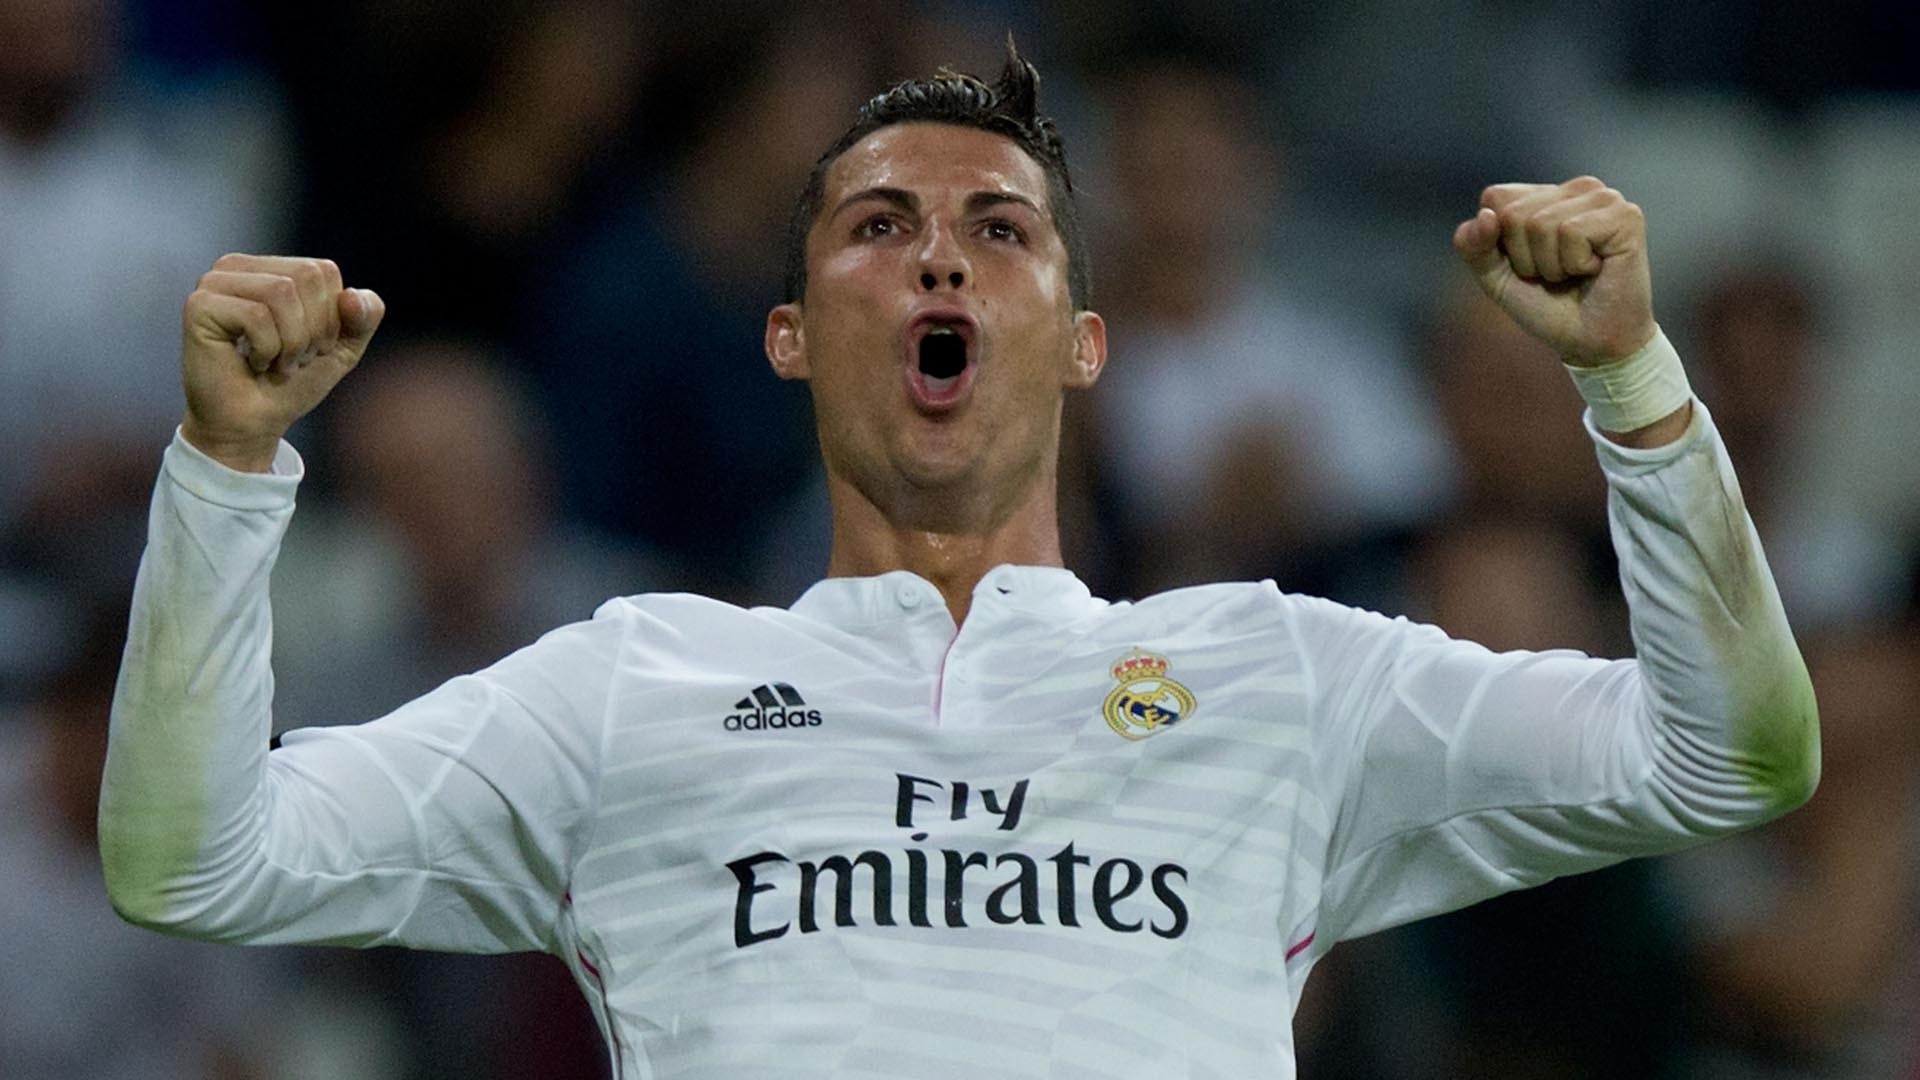 Real Madrid striker Cristiano Ronaldo set a new Champions League final record by scoring against Juventus.